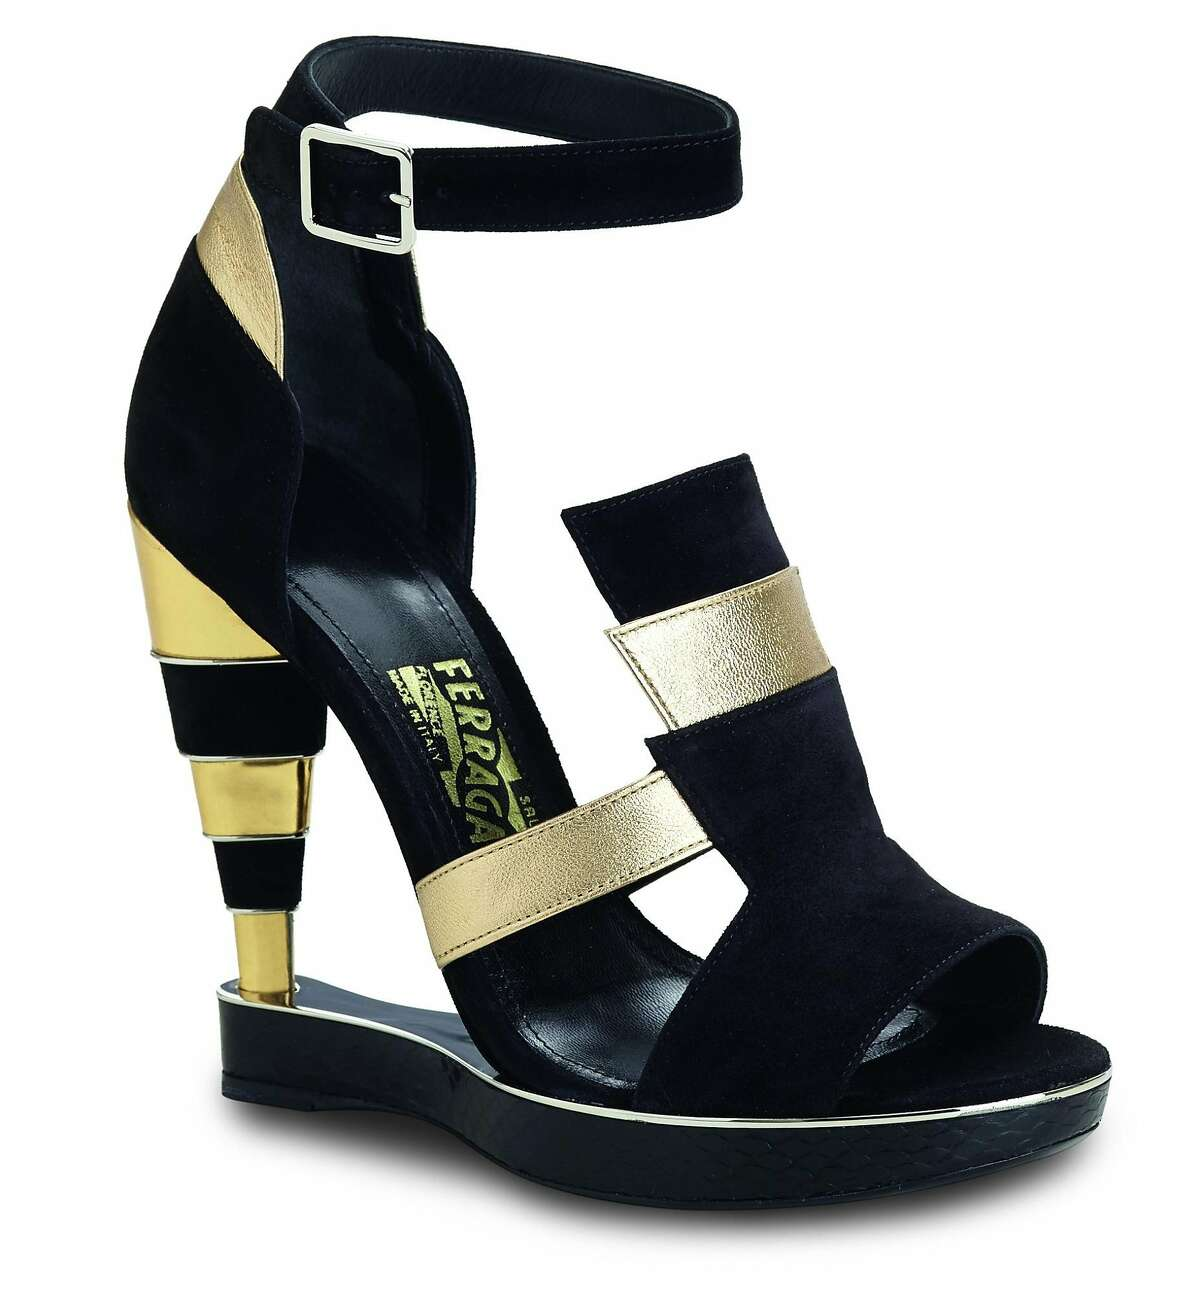 Salvatore Ferragamo black and gold suede calfskin shoes, $1,290. Exclusively available at the newly redesigned Beverly Hills Salvatore Ferragamo store, 357 N. Rodeo Dr., Beverly Hills, 310.273.9990, and online at www.Ferragamo.com.